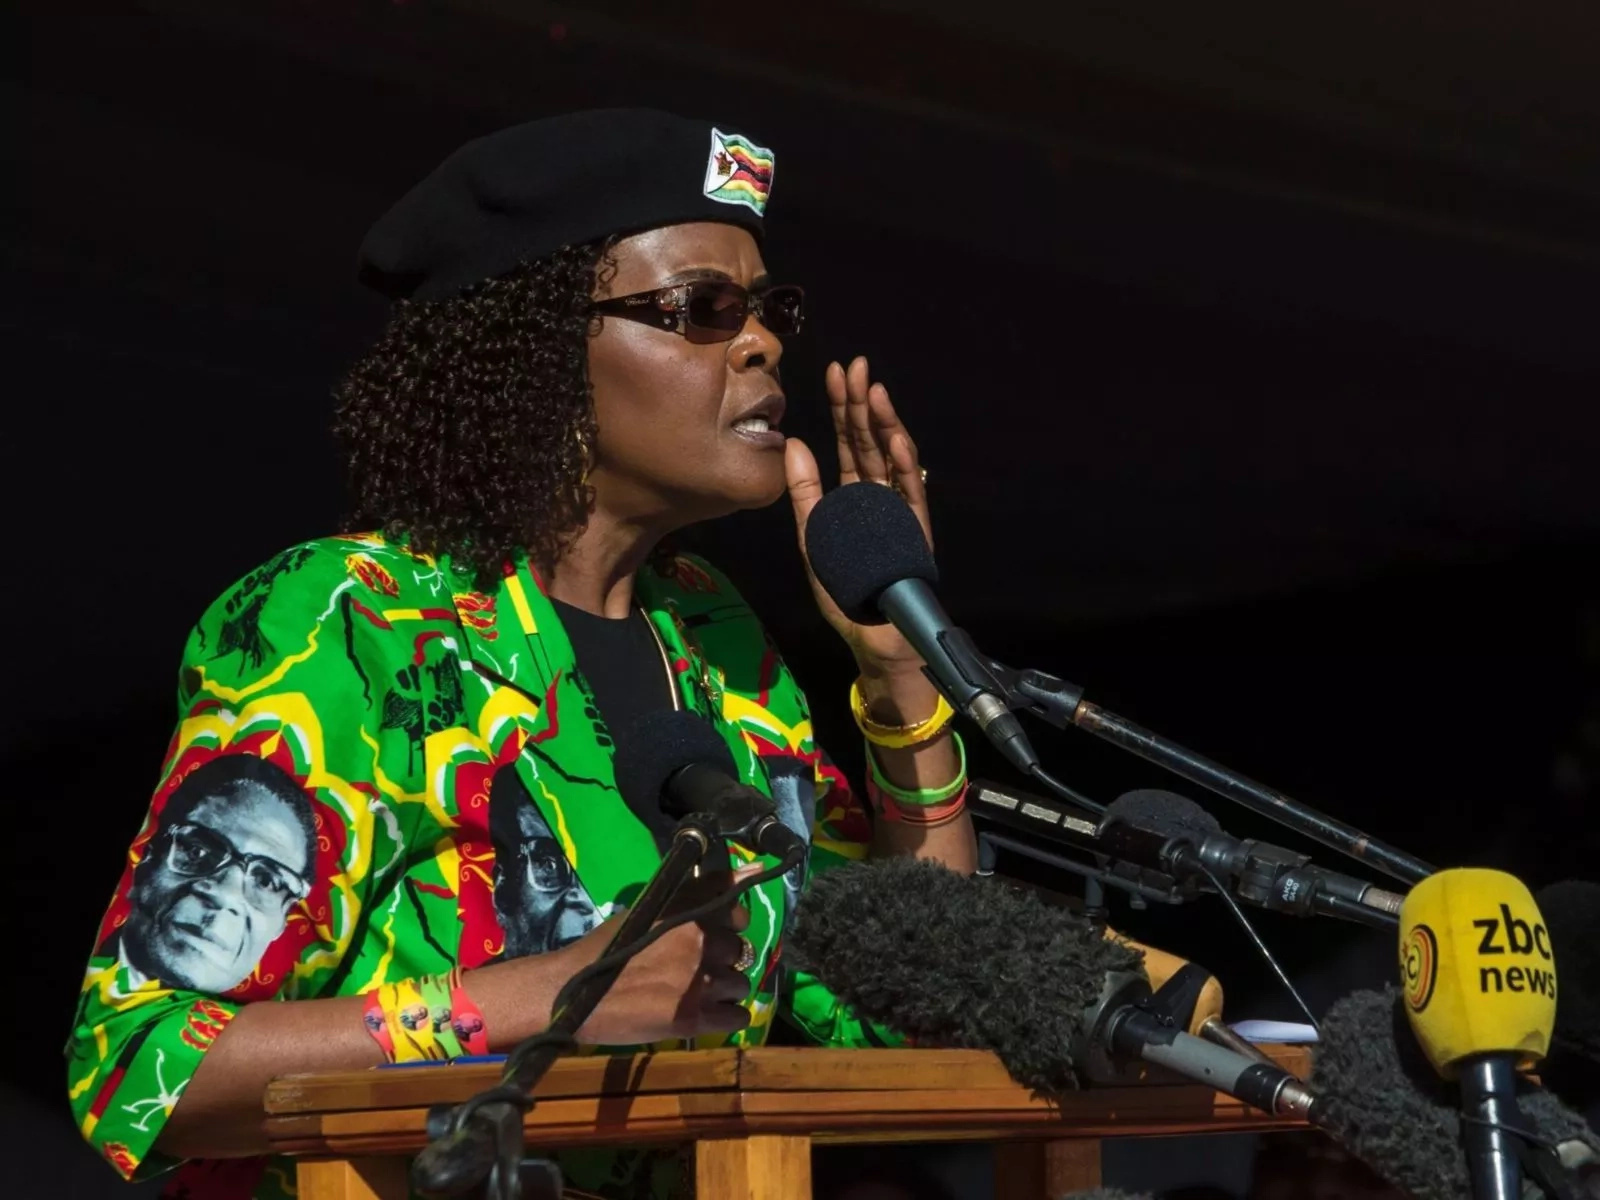 Just in: Mugabe's wife leaves Zimbabwe as military takes over Harare